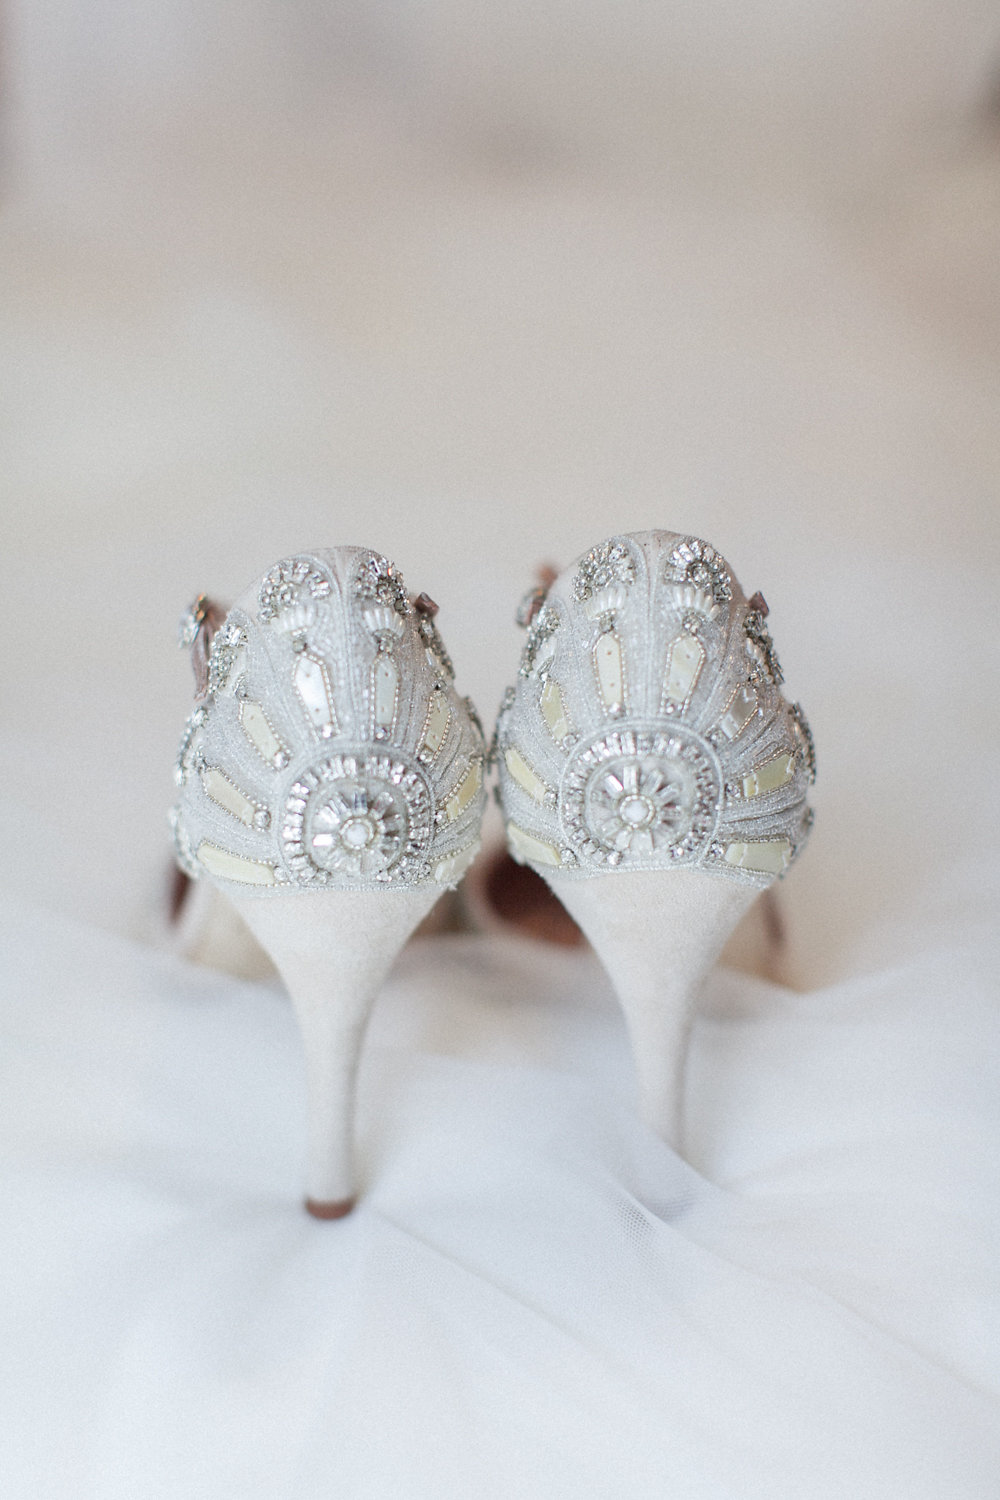 bejeweled wedding shoes - photo by Roberta Facchini Photography http://ruffledblog.com/herbarium-inspired-wedding-ideas